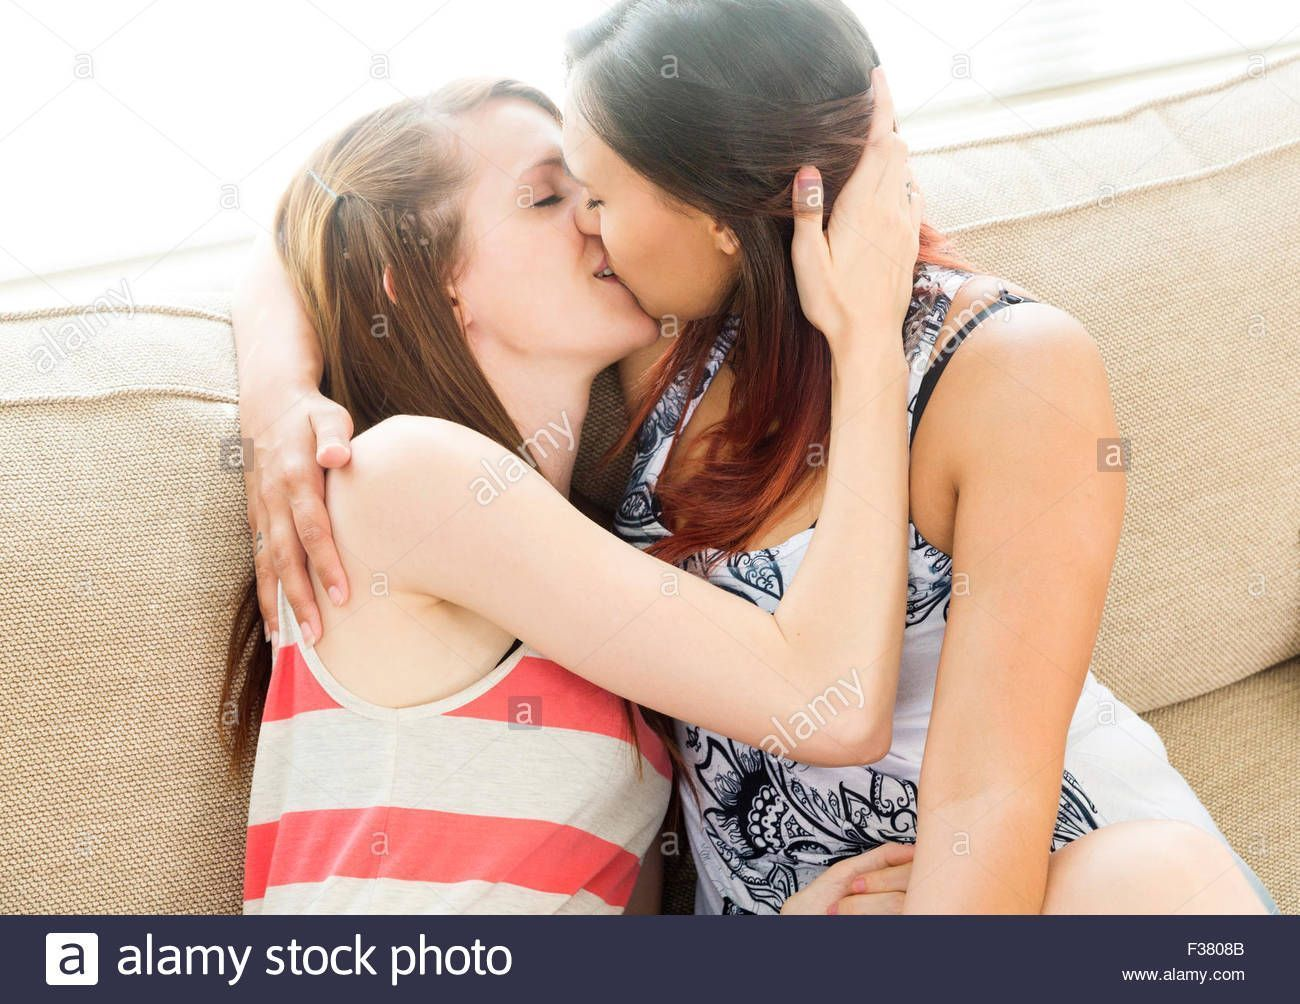 Teen lesbians for free